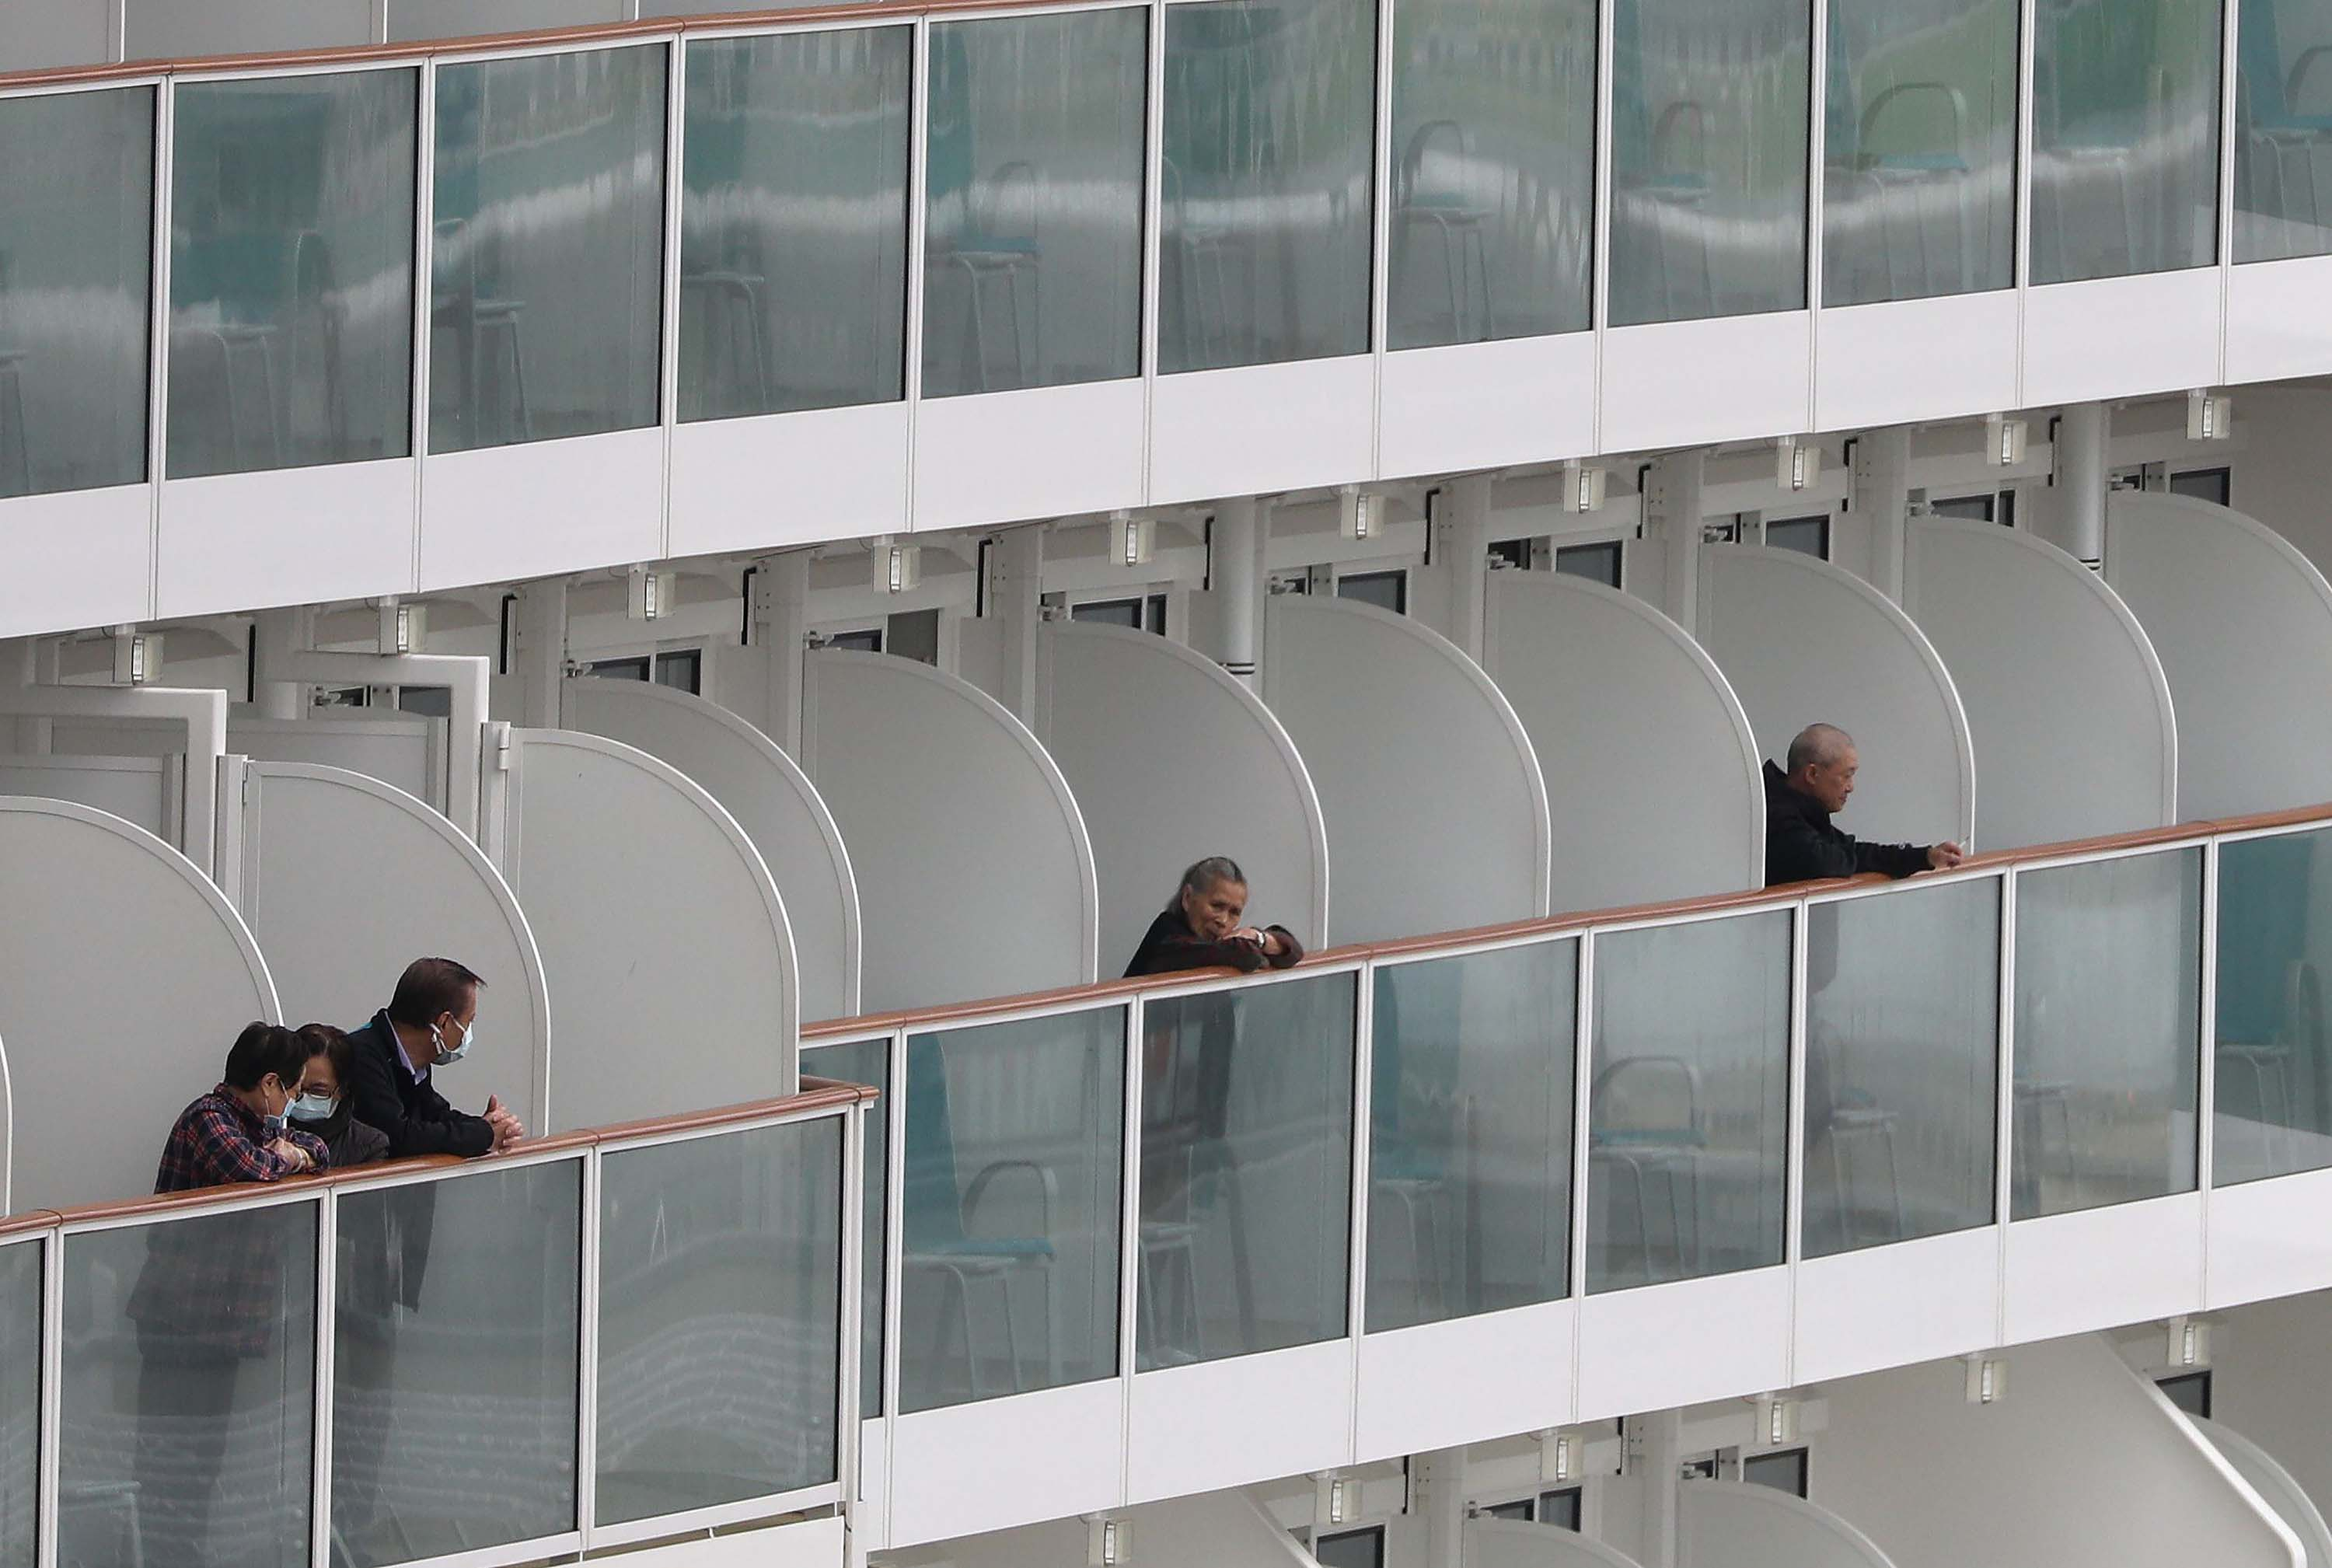 Passengers look out from balconies aboard the World Dream cruise liner docked at the Kai Tak Cruise Terminal in Hong Kong on Wednesday.